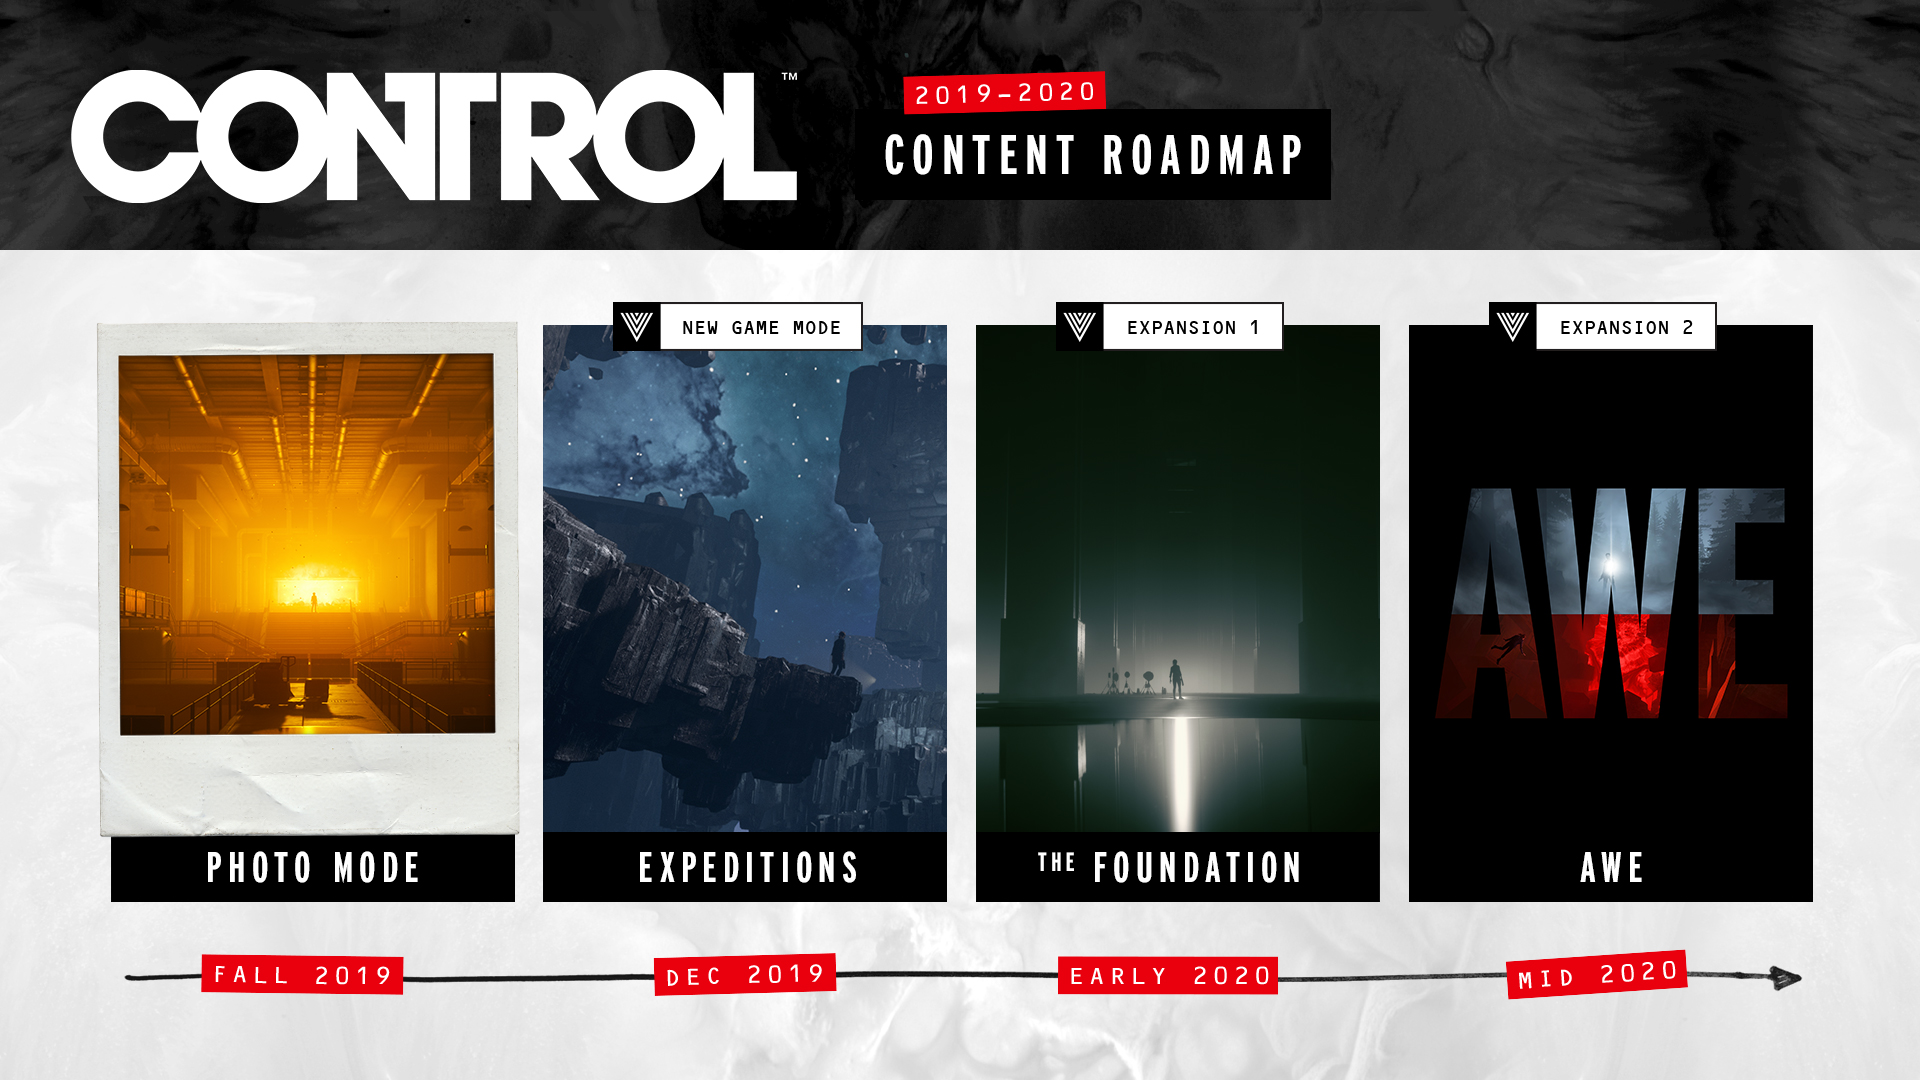 Control is getting 2 expansions, teases Alan Wake connection